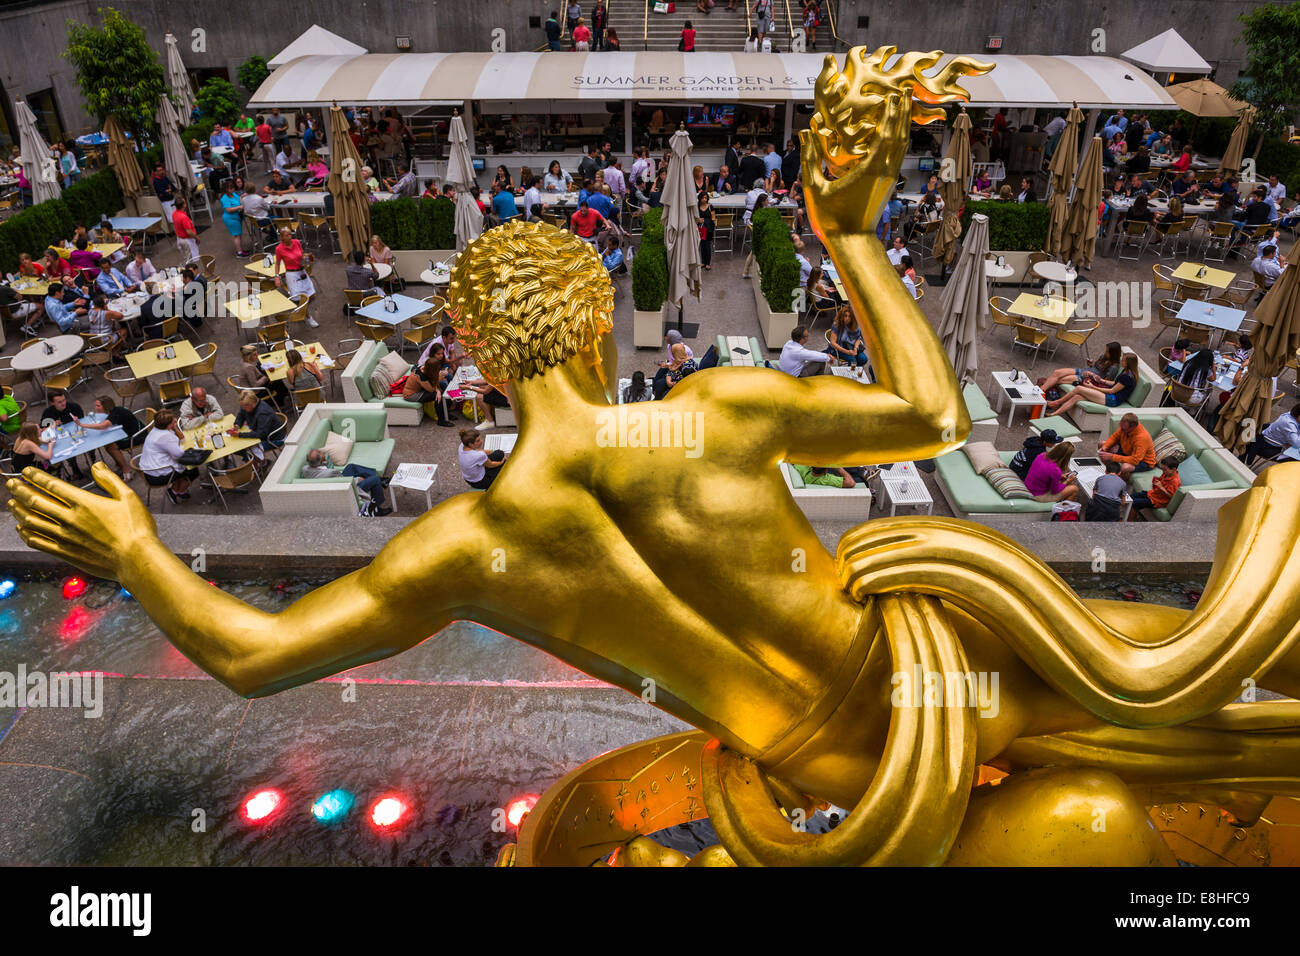 The statue of the Titan God, Prometheus sits above the sunken plaza at the Rockefeller Center located in Midtown - Stock Image